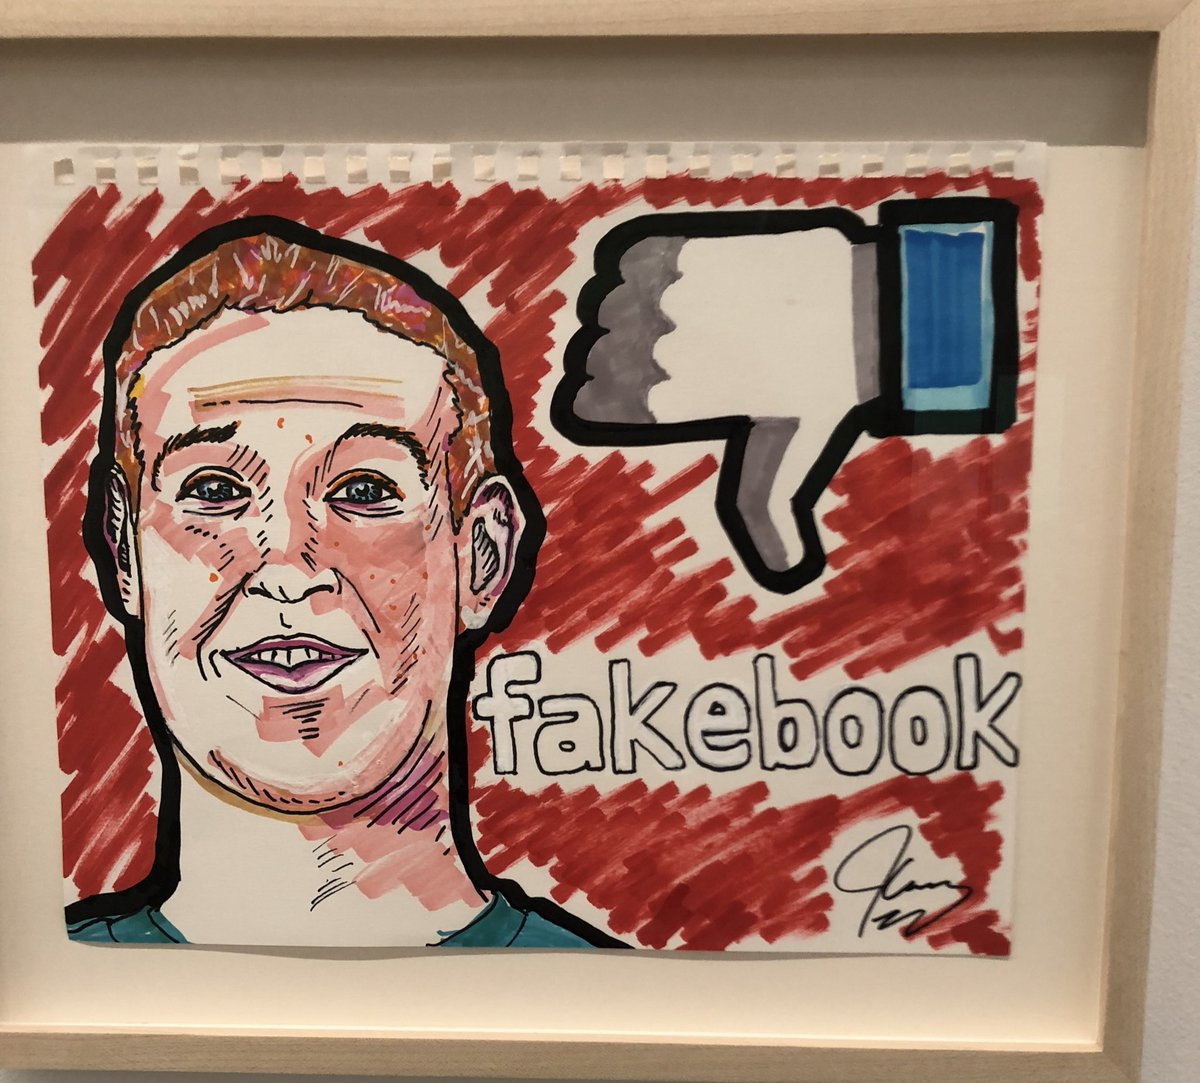 Today is a good day to #DeleteFacebook @facebook Today is a good day to #DeleteFacebook @facebook Today is a good day to #DeleteFacebook @facebook Today is a good day to #DeleteFacebook @facebook Today is a good day to #DeleteFacebook @facebook #DeleteFacebook #TuesdayThoughts